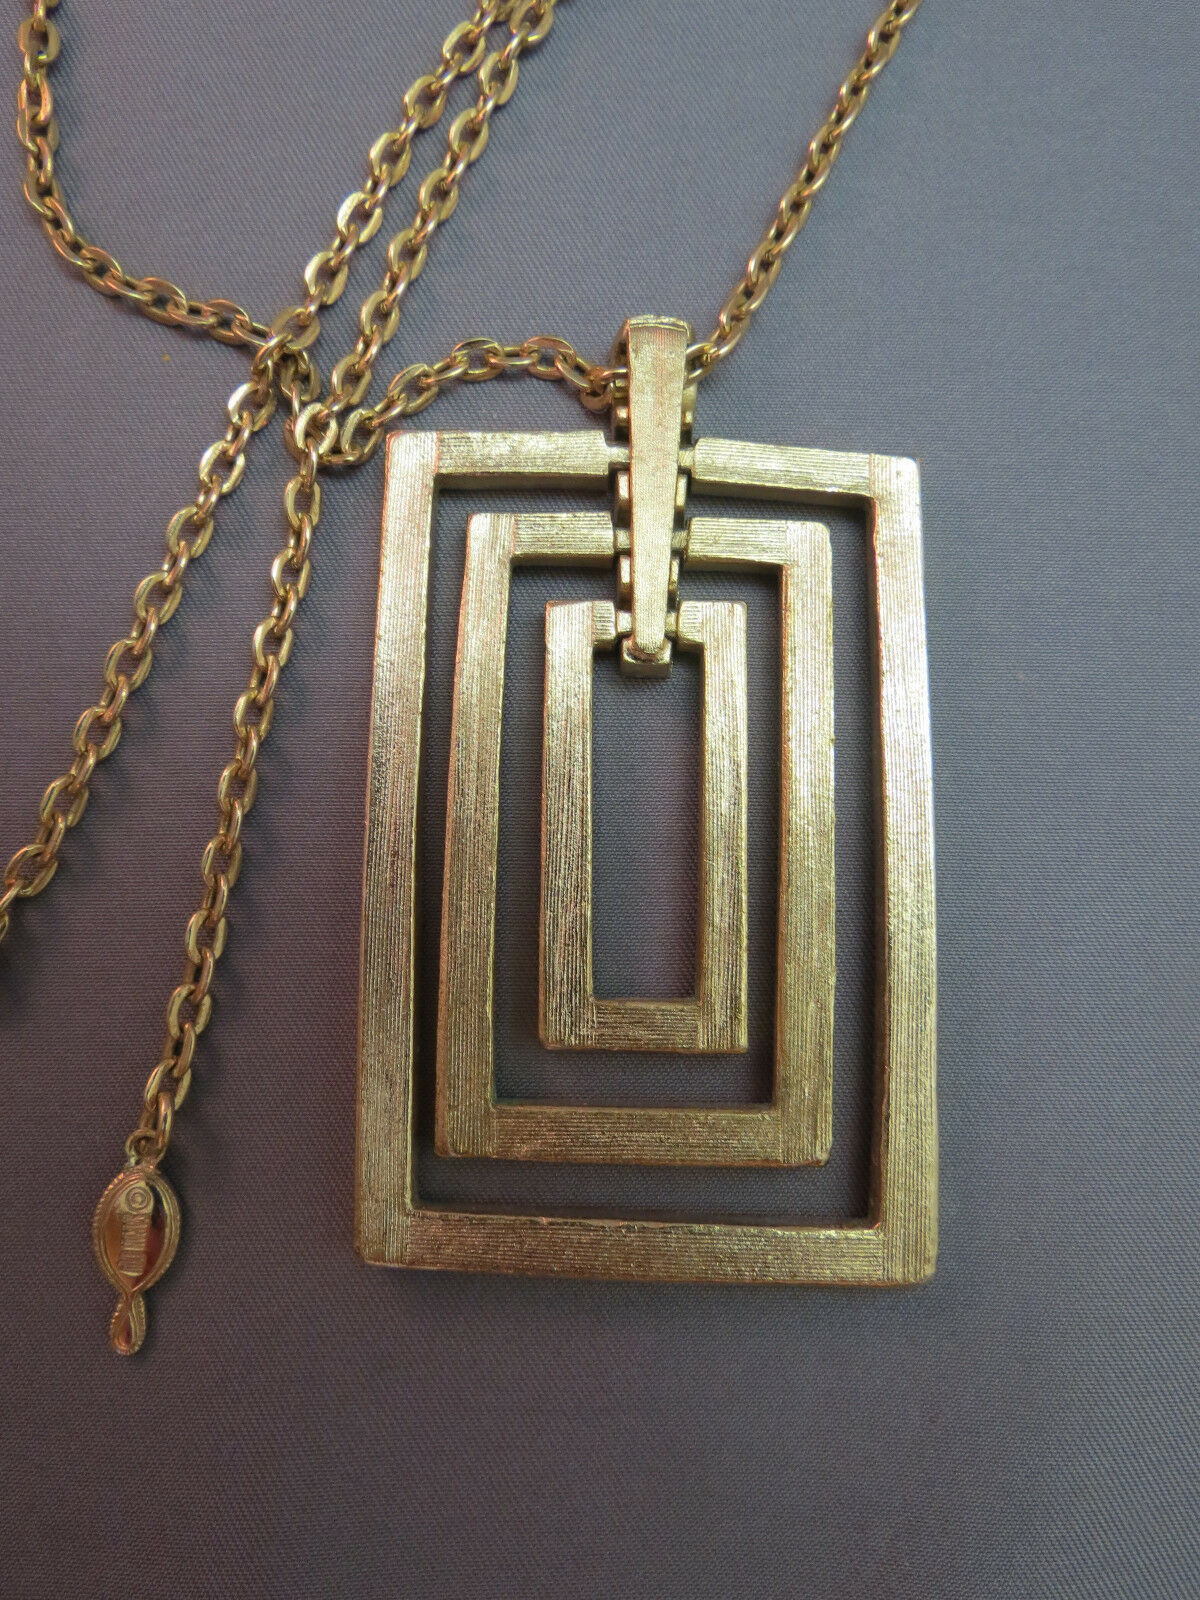 Couture Sarah Coventry Pendant Necklace Chain Rectangular Gold Plate Texture VTG image 2